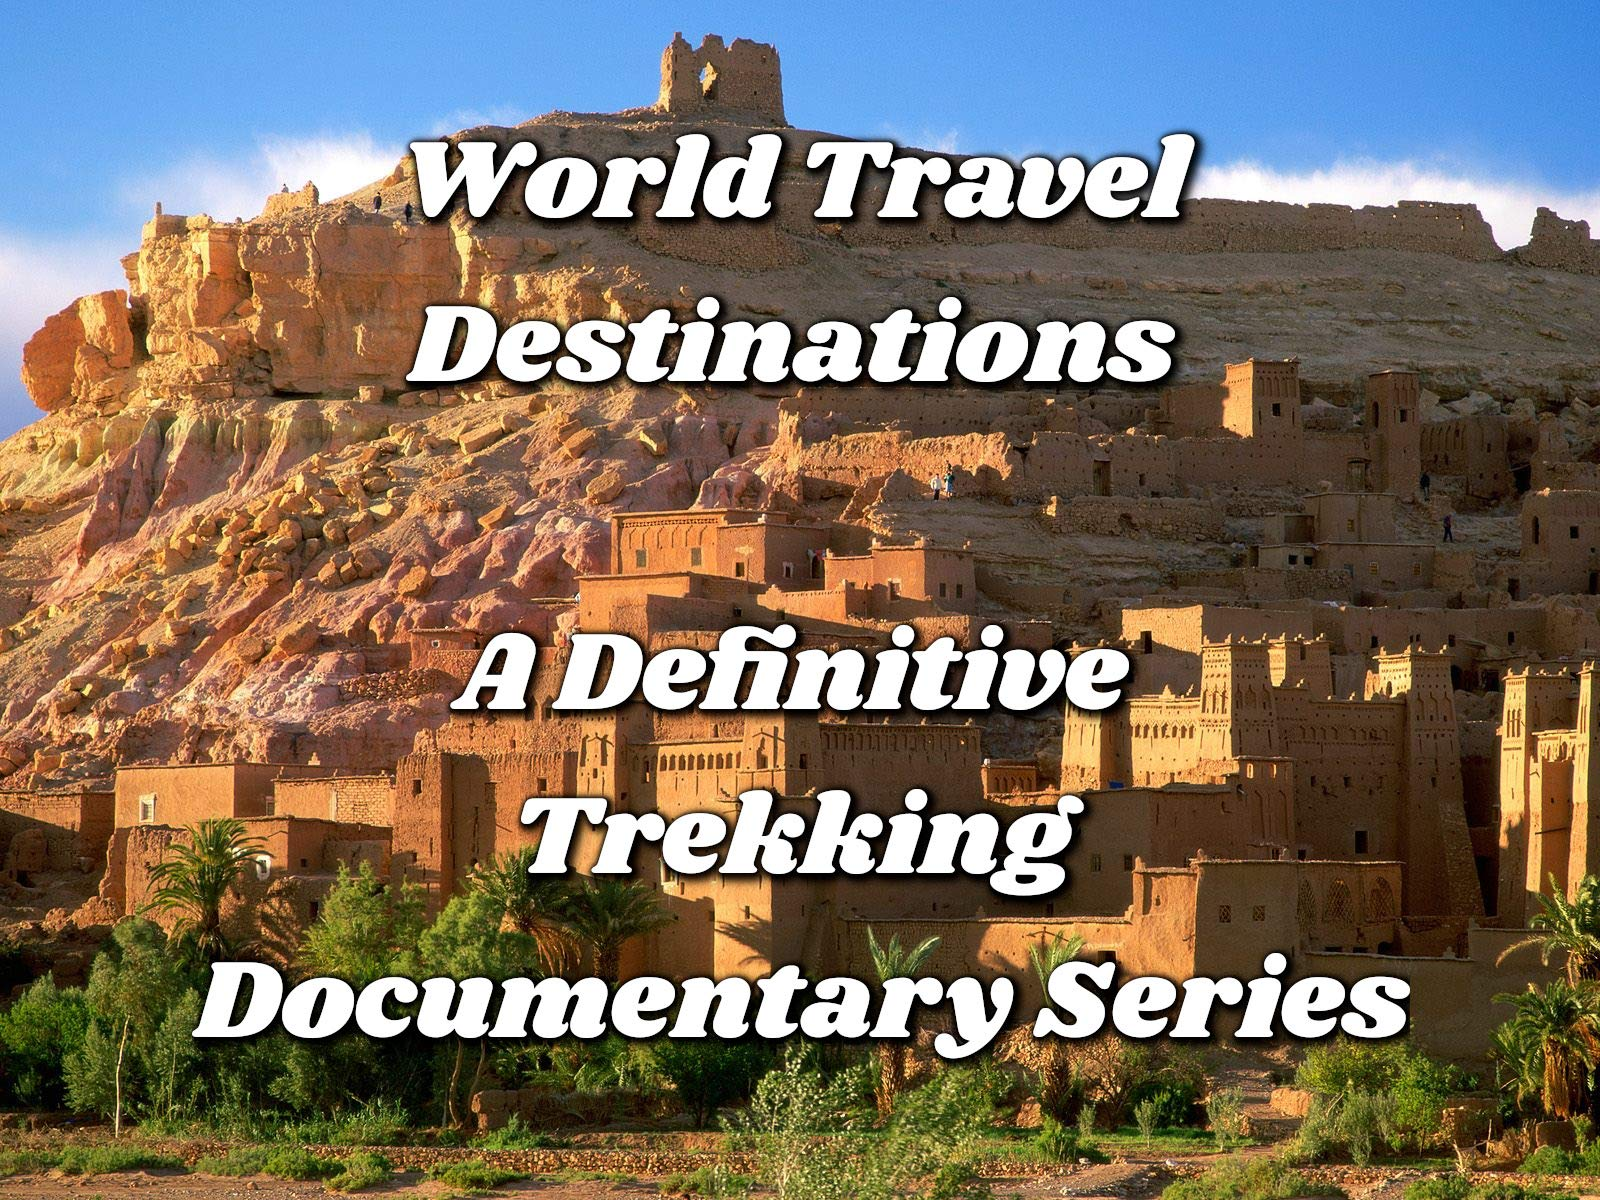 World Travel Destinations - A Definitive Trekking Documentary Series on Amazon Prime Video UK